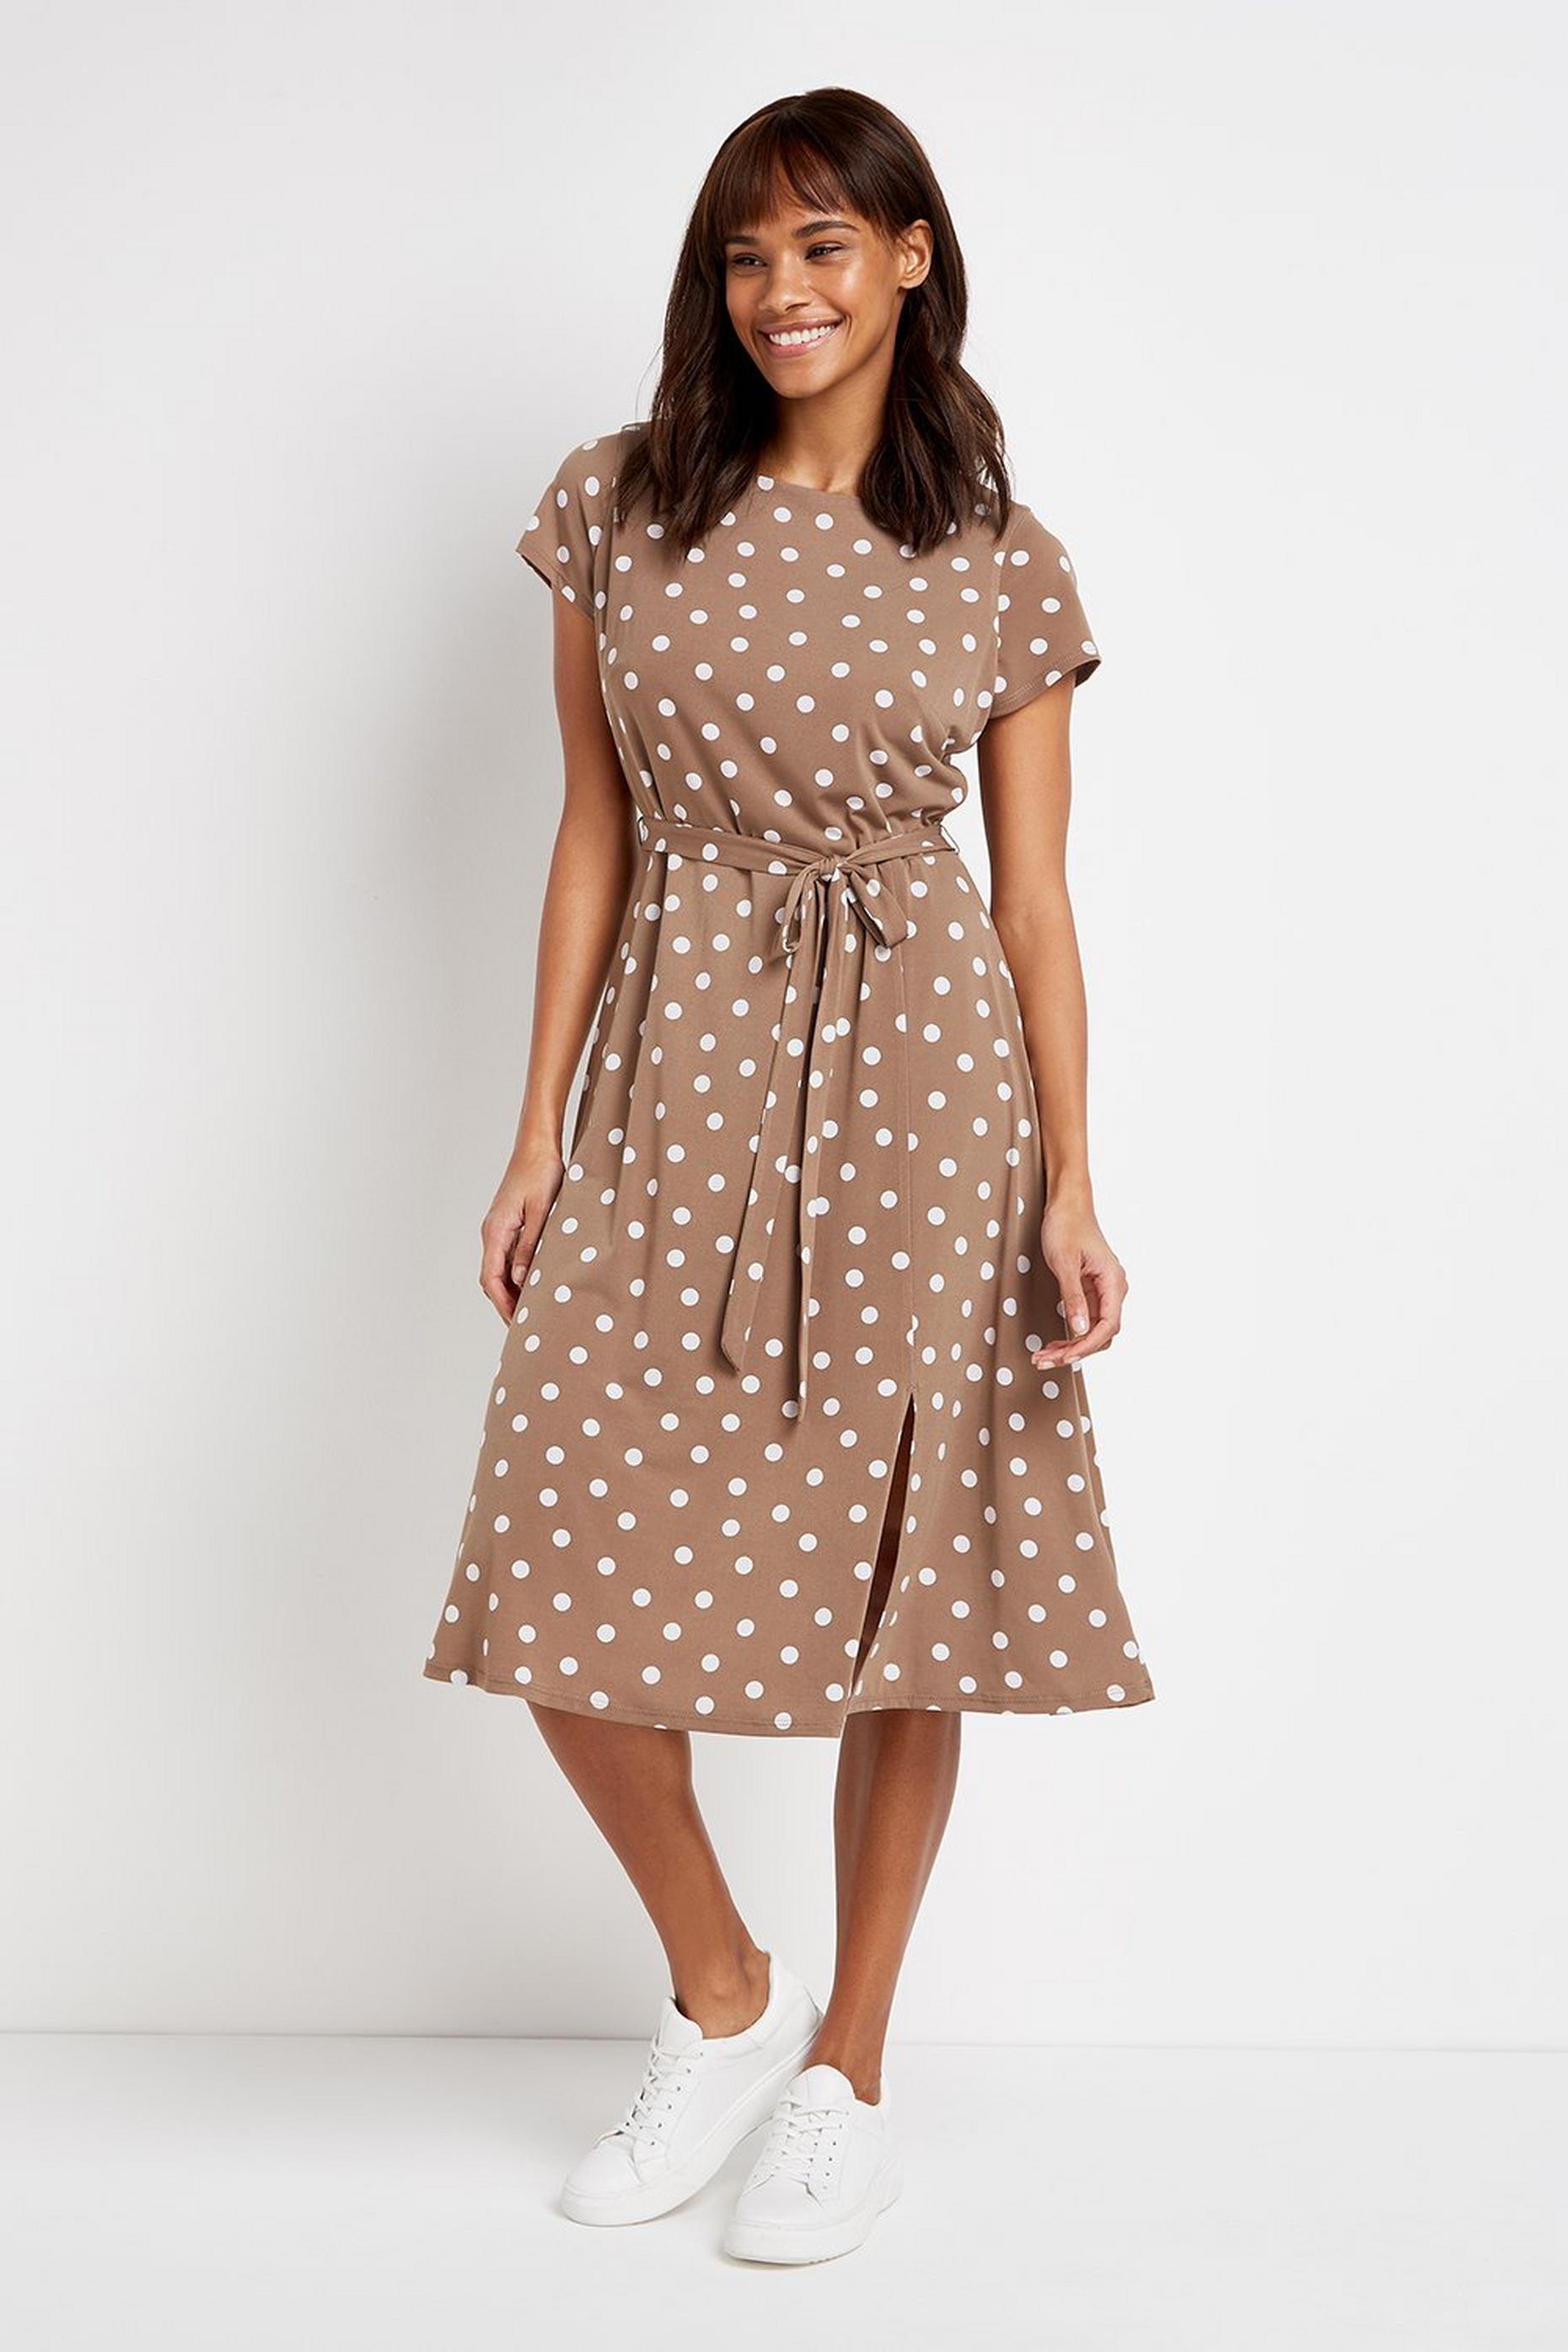 Taupe Polka Dot Dress